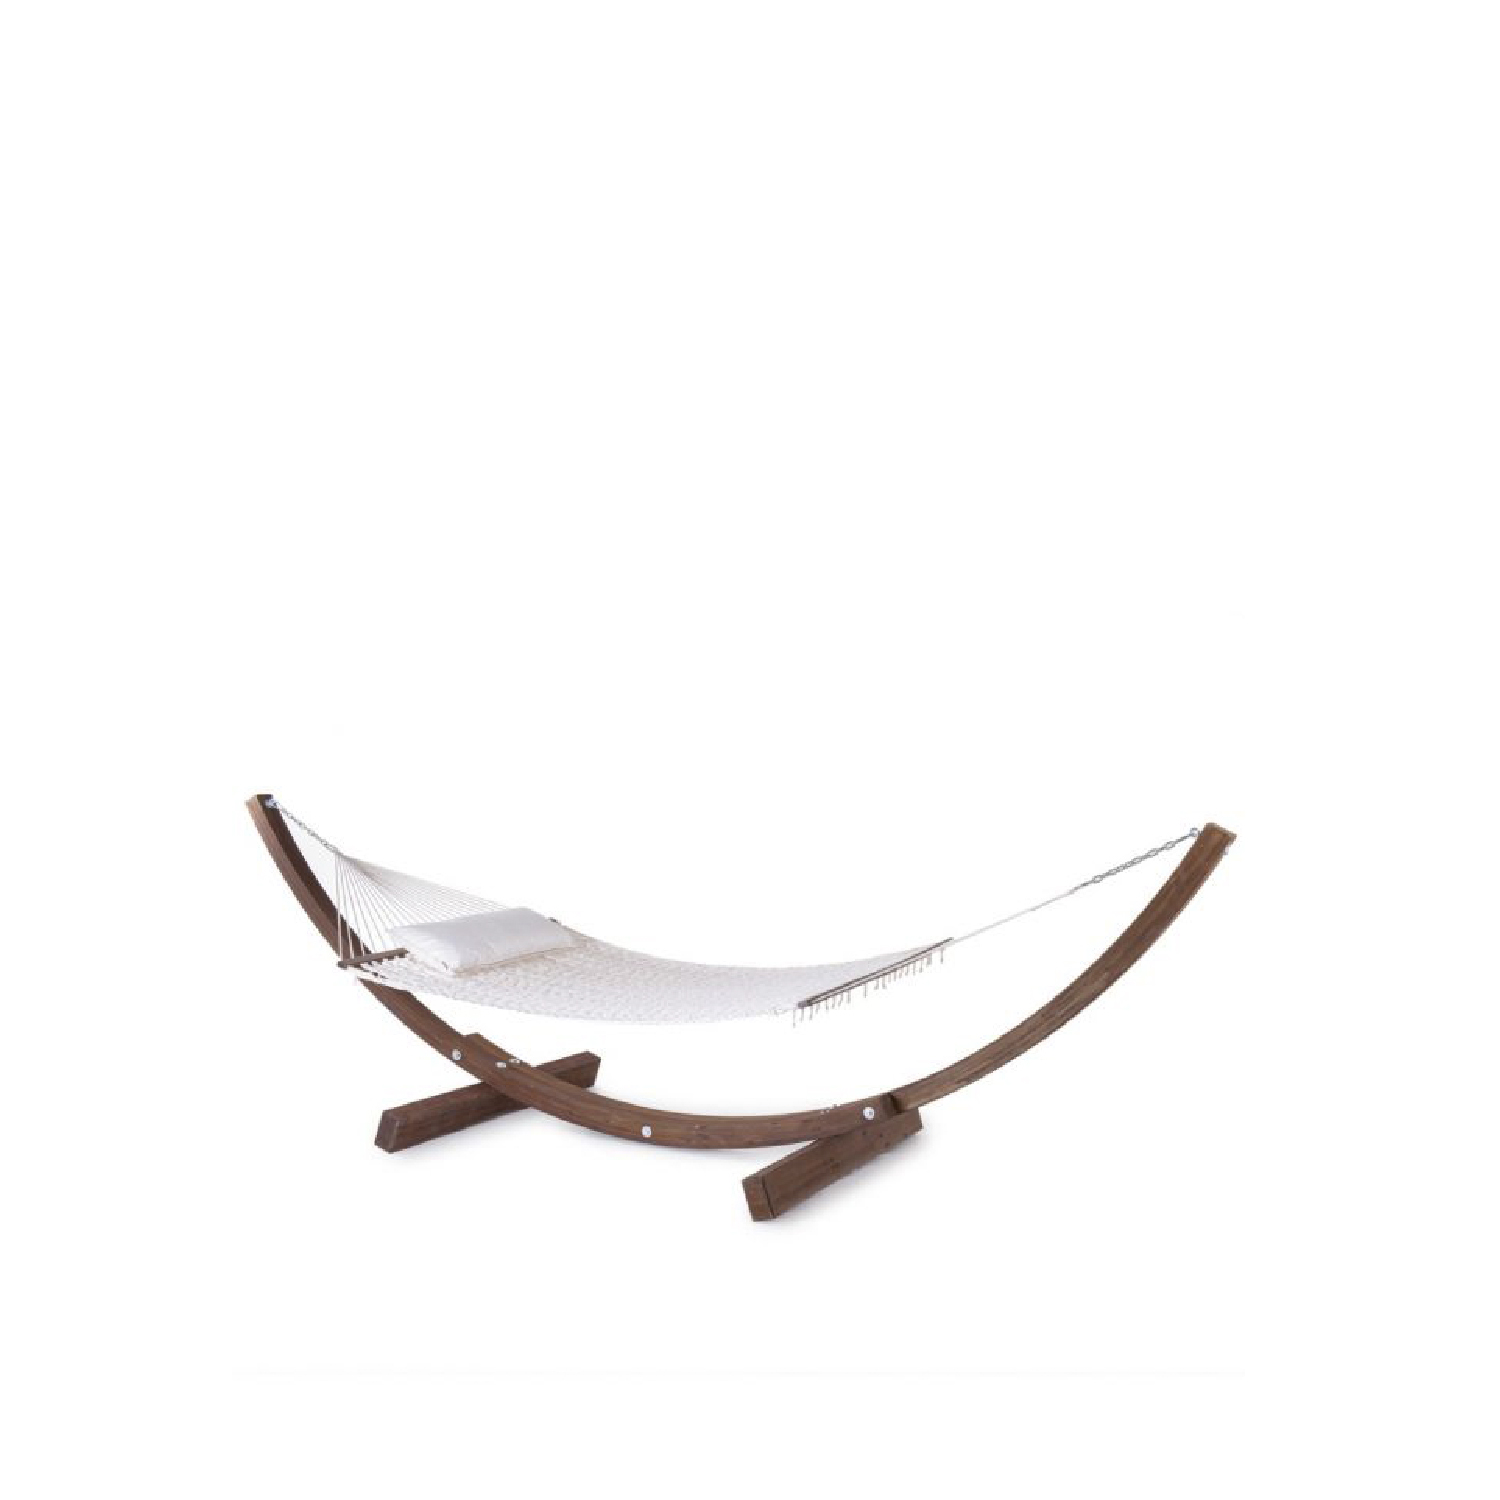 Amanda Hammock - The AMANDA hammock, timeless icon of UNOPIU' style. On show on the cover of the 2018 catalogue, AMANDA is the result of an idea as simple as it is clever: the combination of curved lamellar wooden poles and handwoven cord net. And so this unique and innovative self-supporting hammock came into being. It can be placed absolutely anywhere, even in the absence of trees.  The AMANDA hammock, a timeless icon of Unopiù design, needs no introduction. This cult object of clearly recognizable design boasts numerous imitations around the world. Created to comfortably accommodate two people, it is upholstered with a new grey melange coloured cord and is supplemented by a practical new cushion.  To create your own personal version or to meet any particular furnishing need, the structure can be painted in colours from the Unopiù Colour.  Structure: treated lamellar wood. Colour: walnut.  Net and cushion:  100% cotton, off white. / grey melange polypropylene | Matter of Stuff